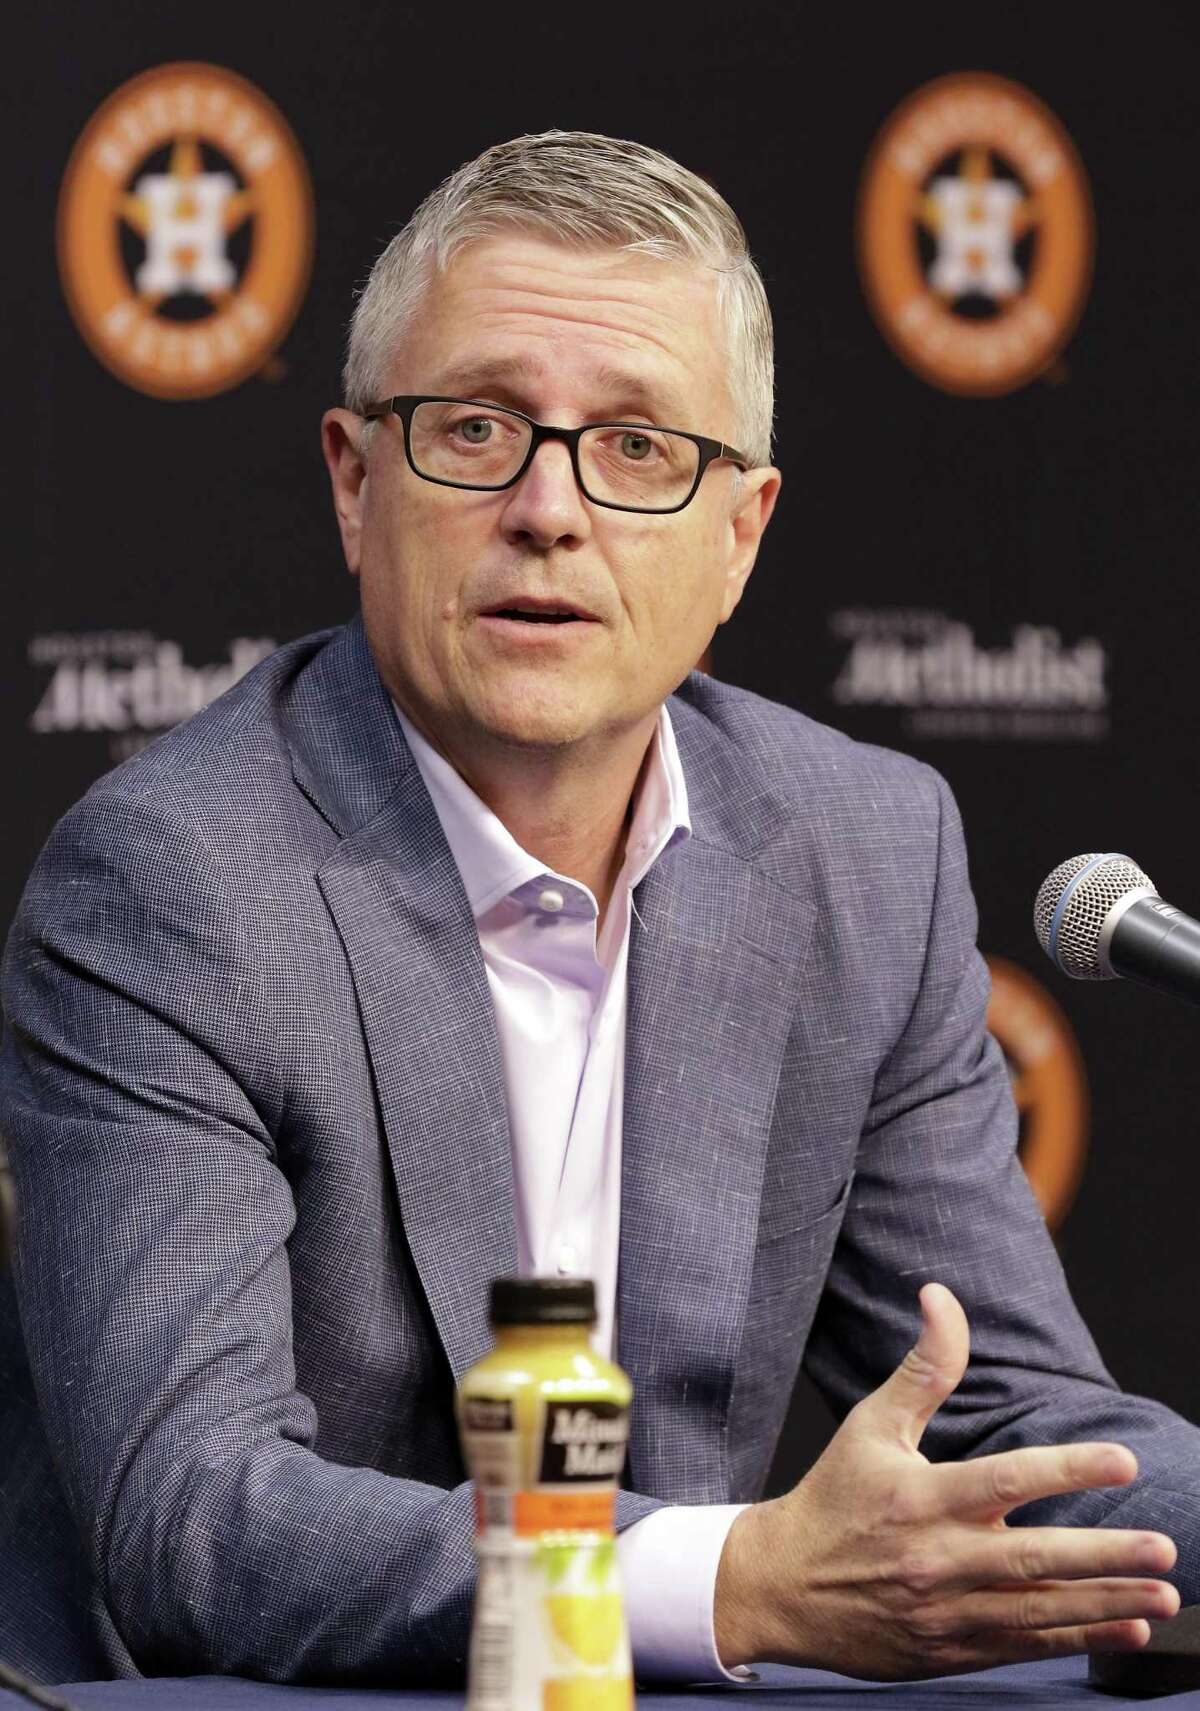 Houston Astros President of Baseball Operations and General Manager Jeff Luhnow speaks during a press conference with Manager A.J. Hinch at Minute Maid Park Monday, Oct. 22, 2018 in Houston, TX.